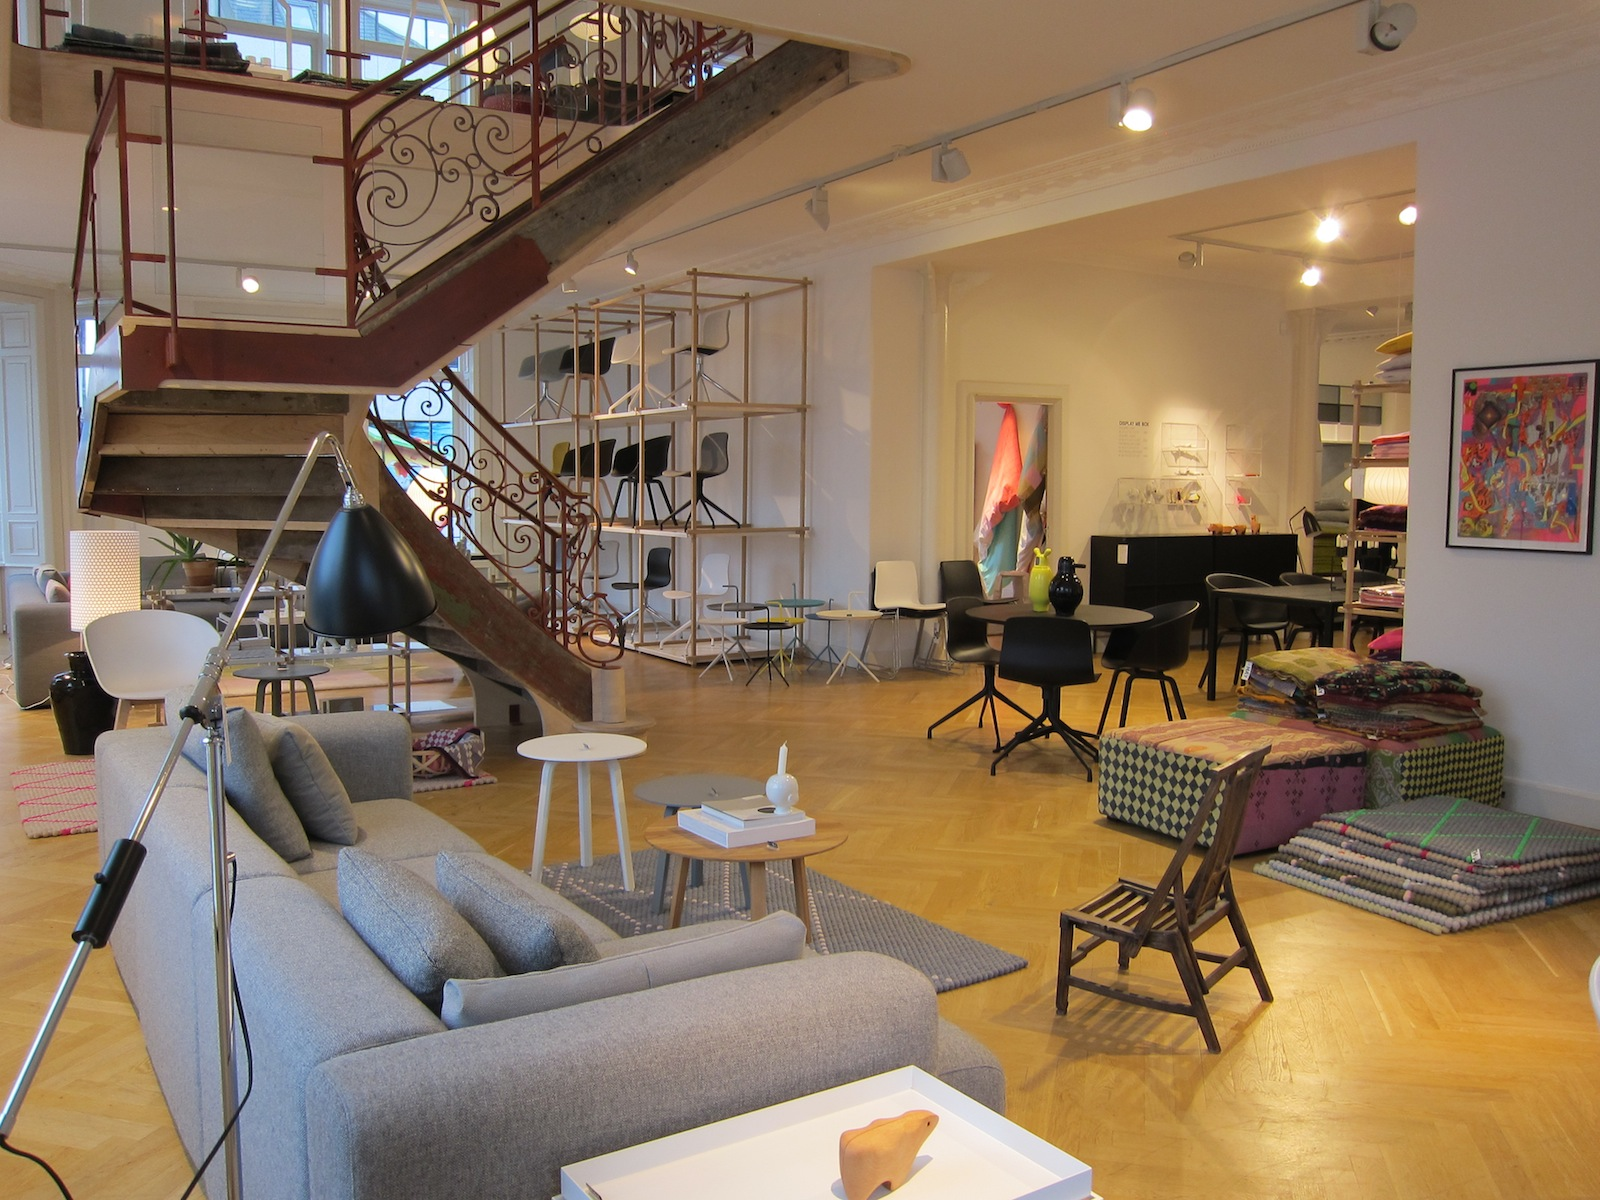 Here's a view of the main floor of the store, a spacious and airy atelier filled with all manner of wonderful things.